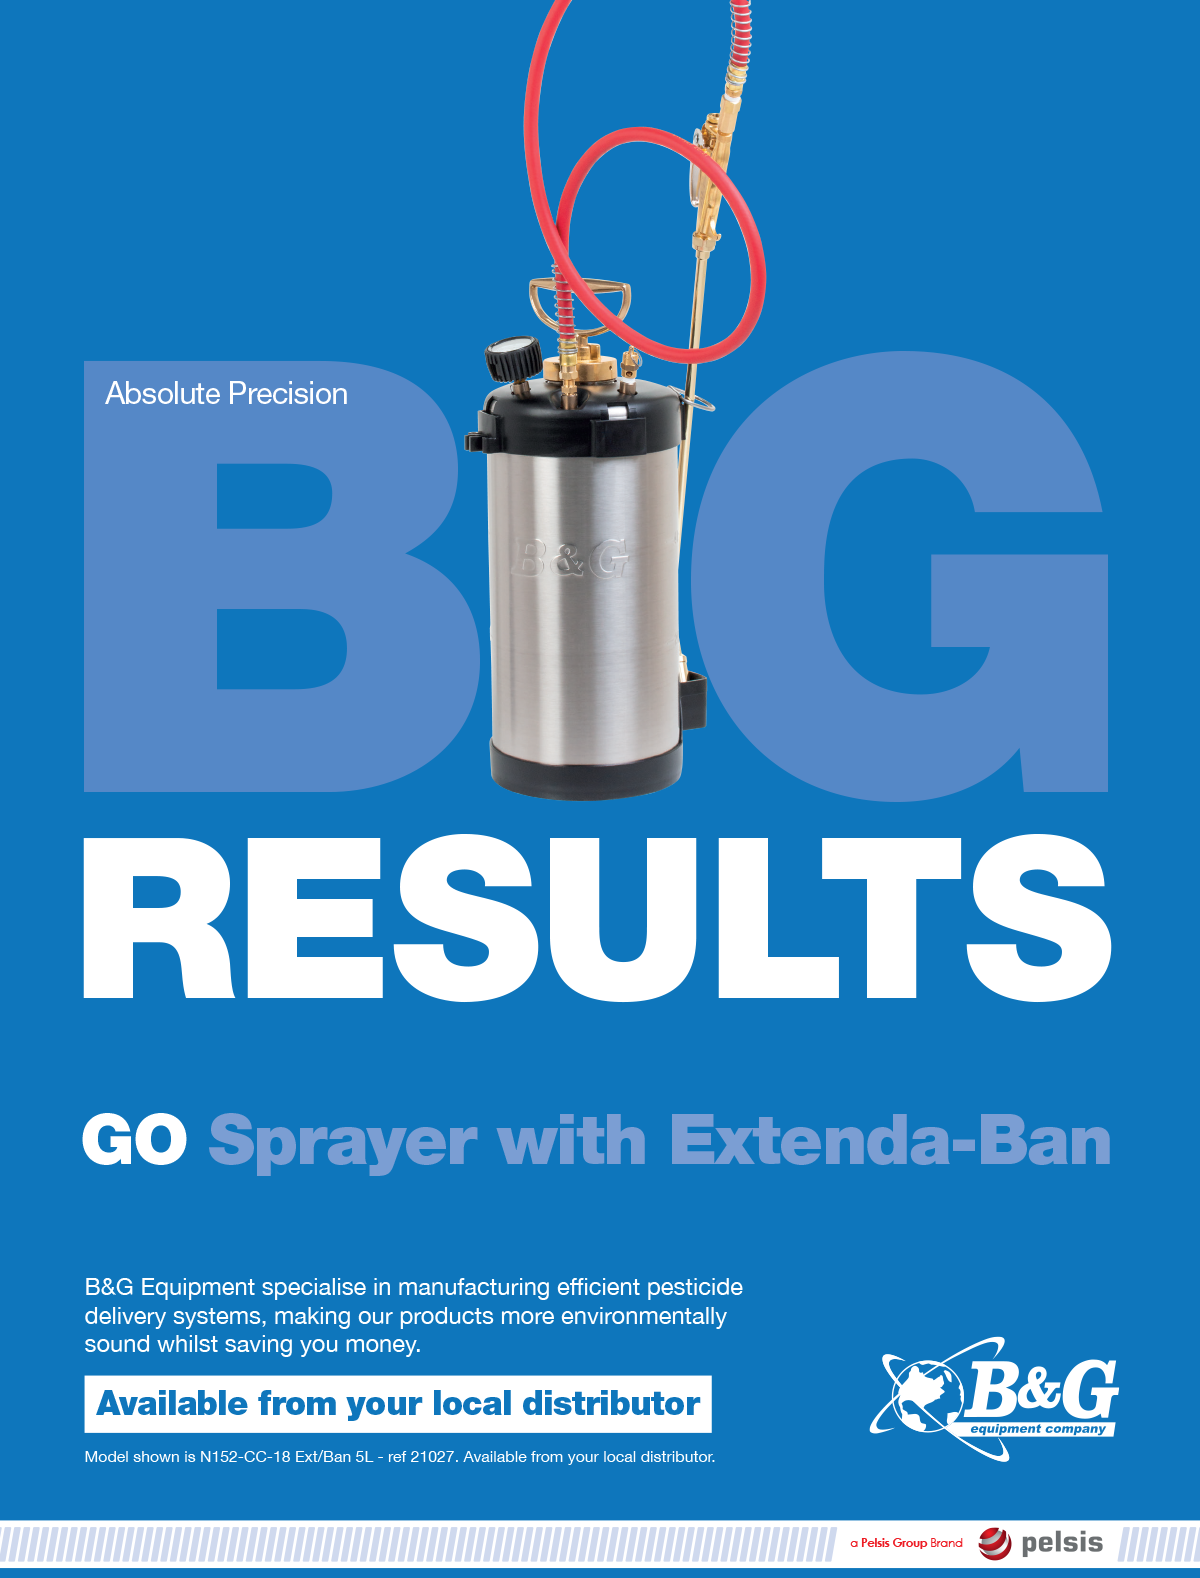 Big results GO sprayer with Extenda-Ban advert in PPC93